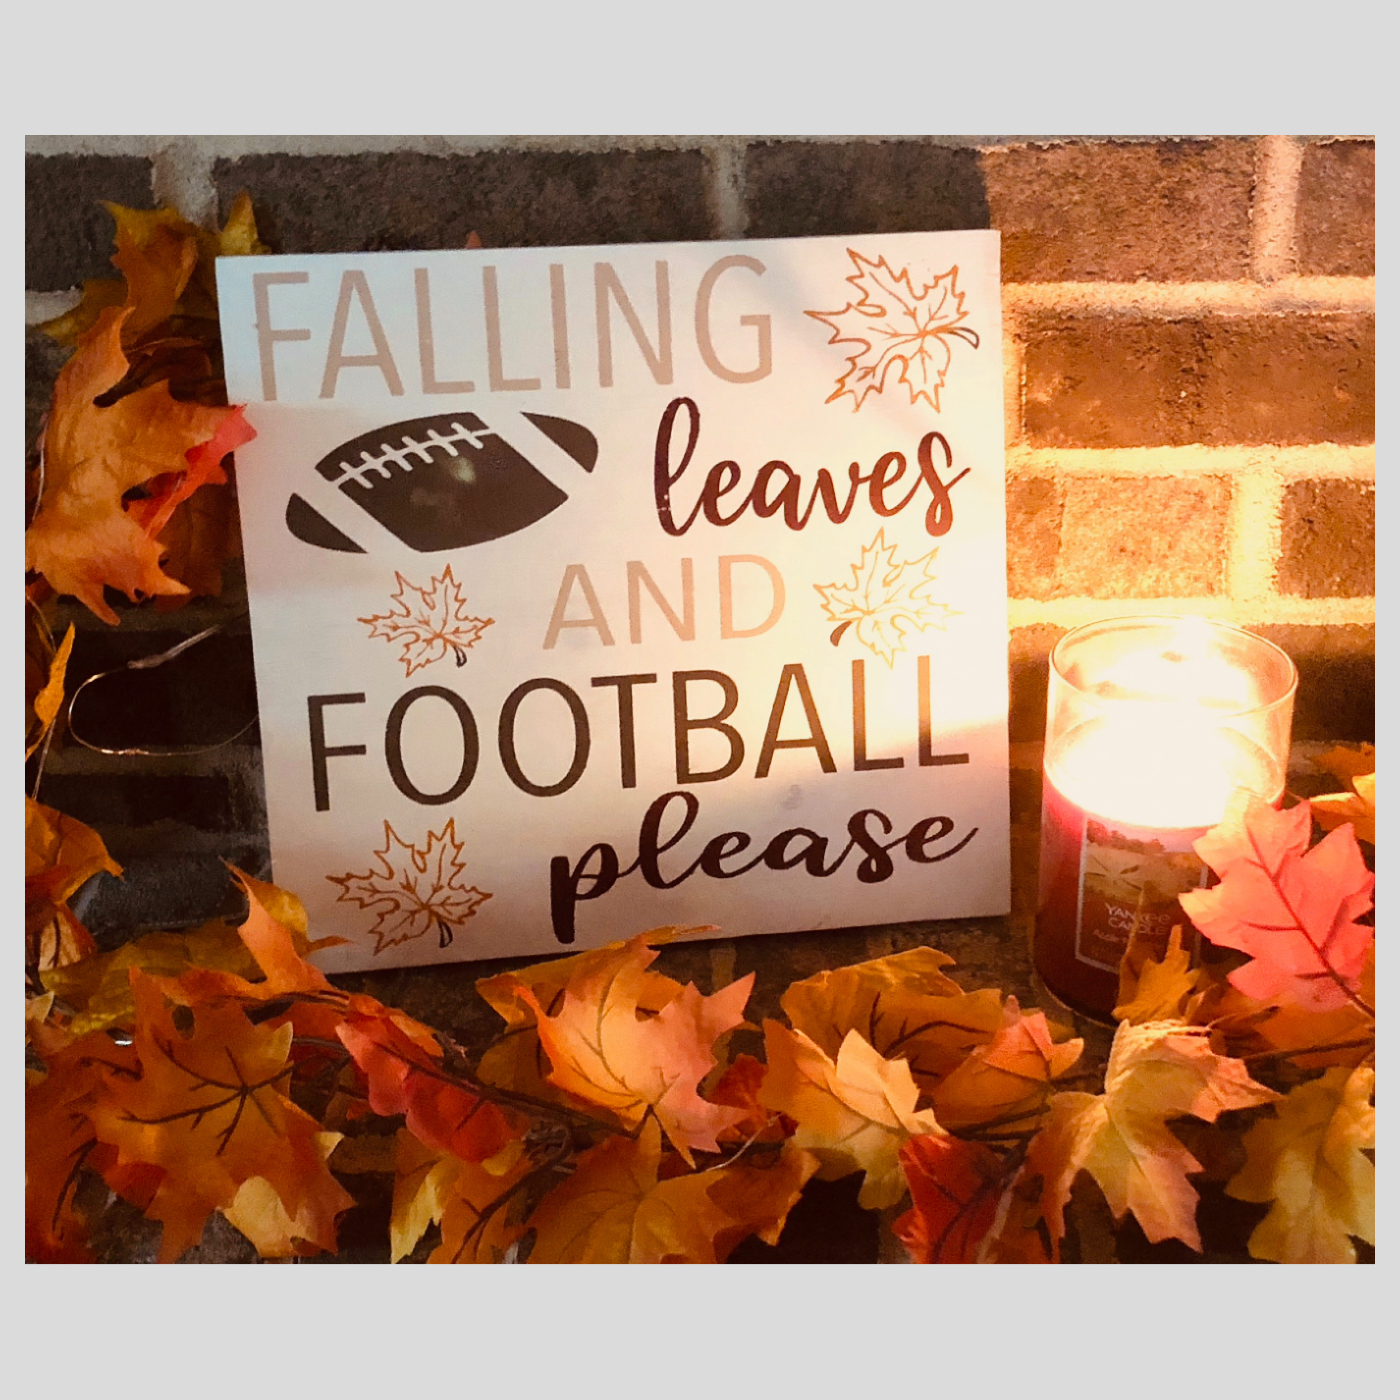 Falling Leaves and Football Please DIY Wood Sign Bethlehem PA